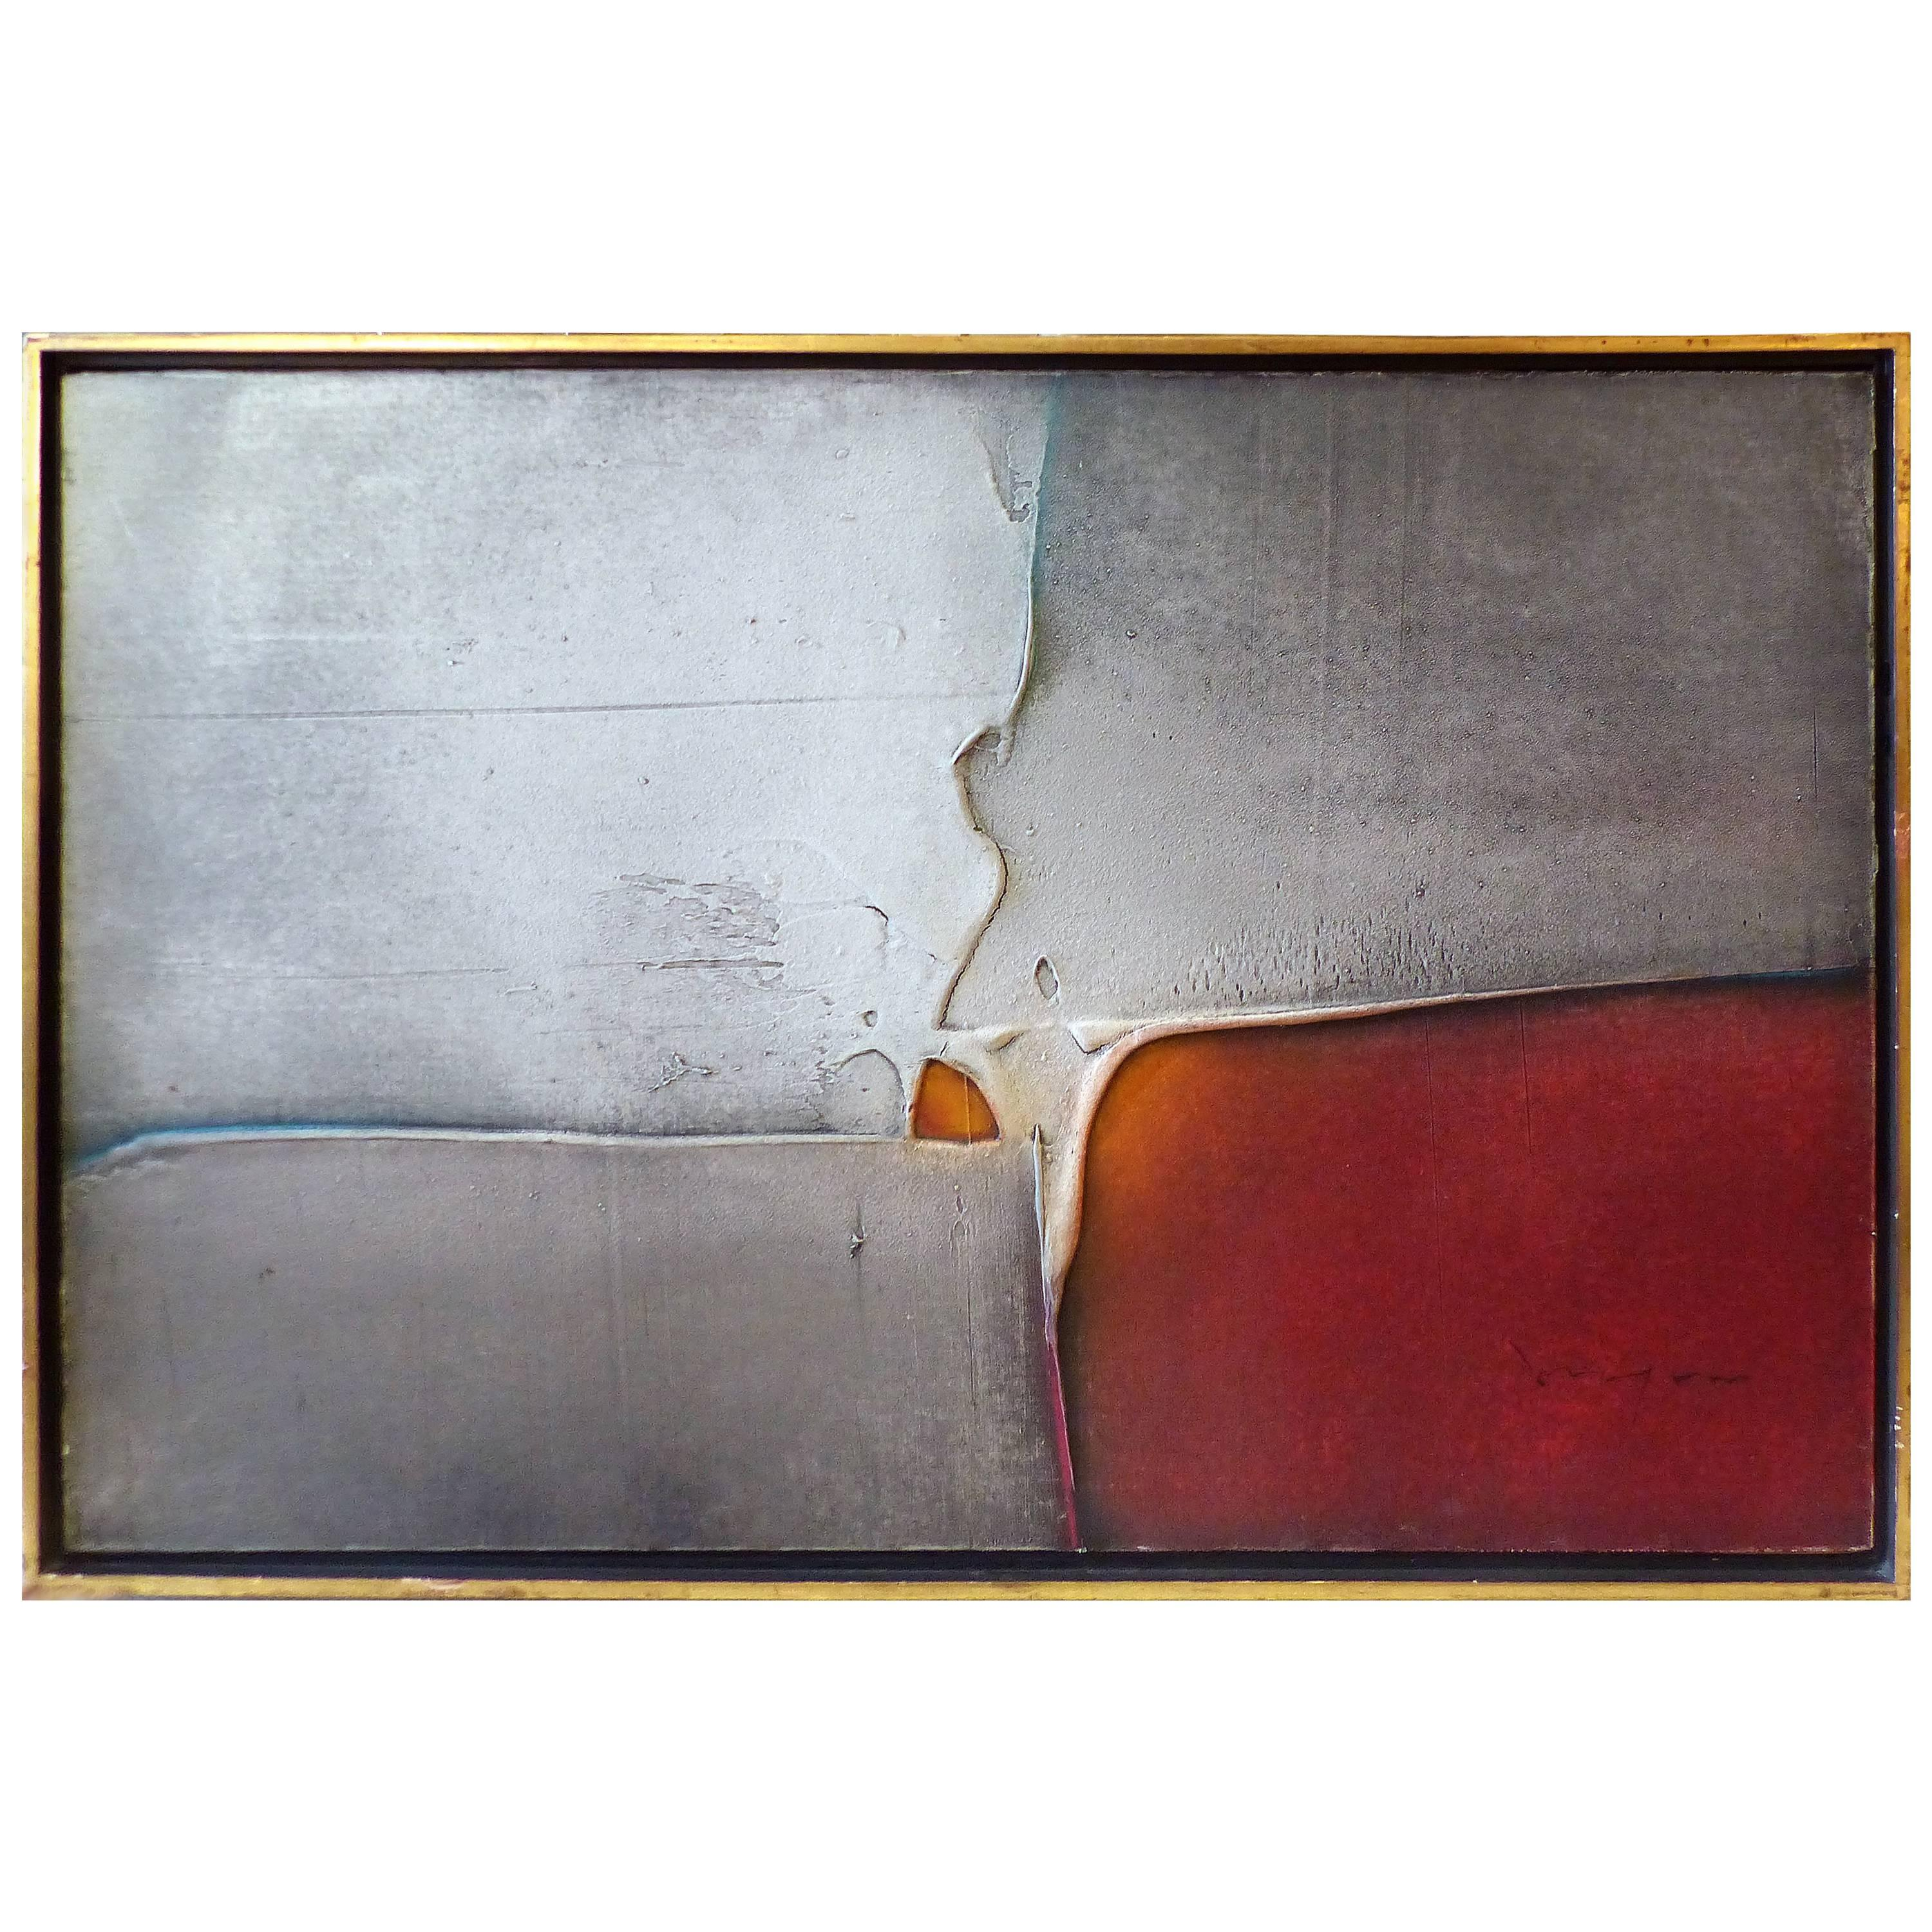 Abstract Oil on Canvas by Louis Moyano 'Chile 1929-Paris 1965'